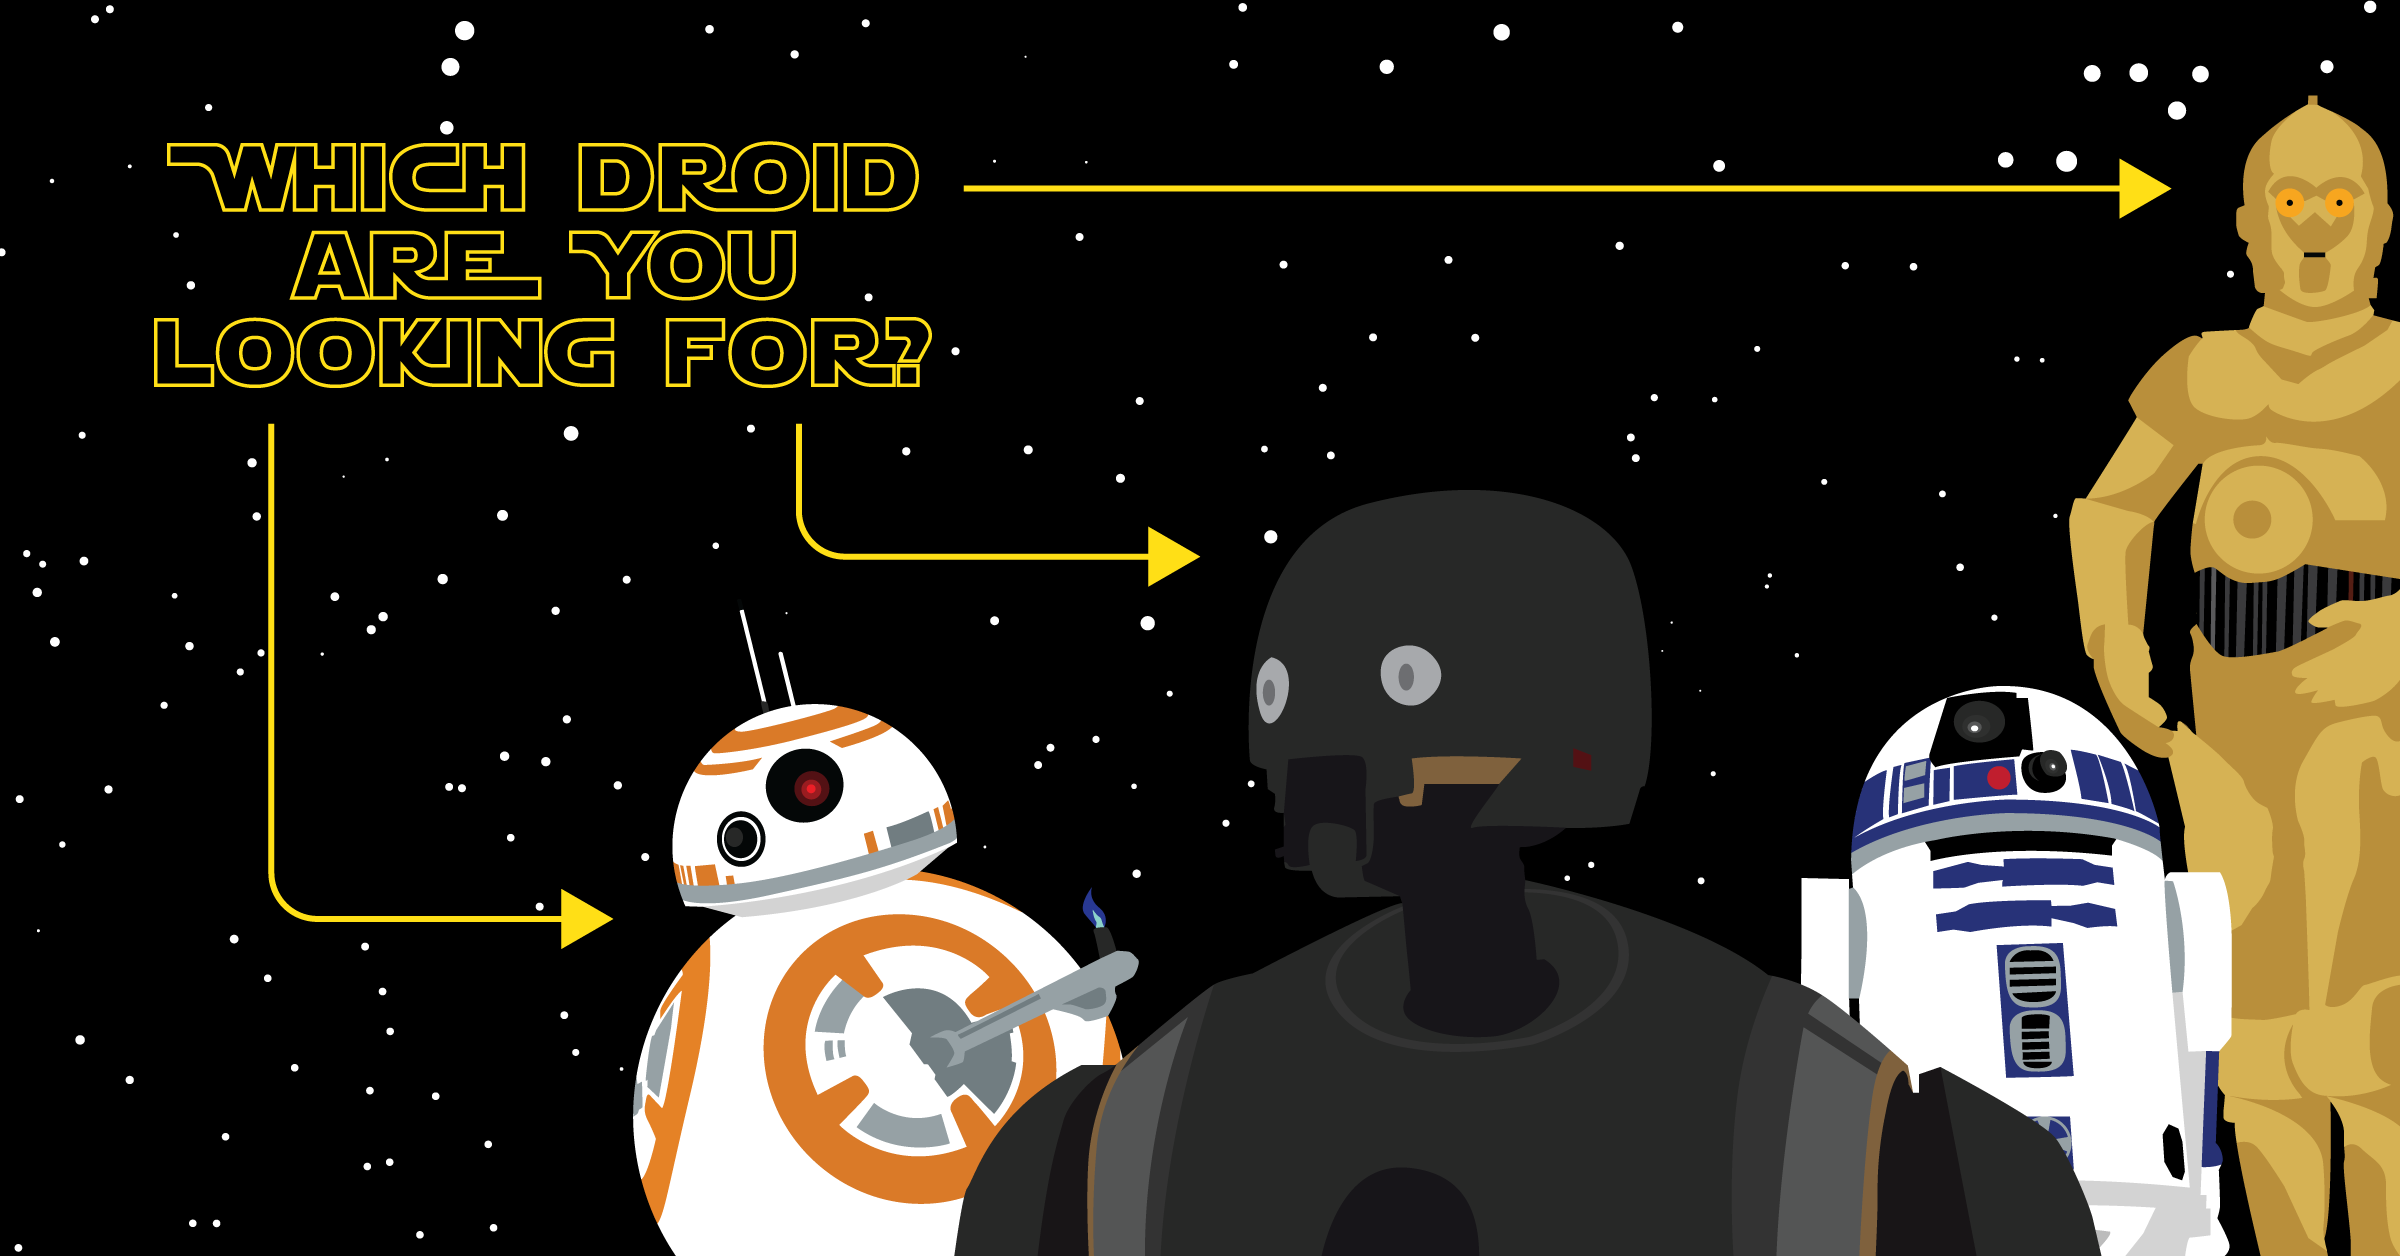 Star Wars: Which Droid Are You Looking For? [Flowchart]